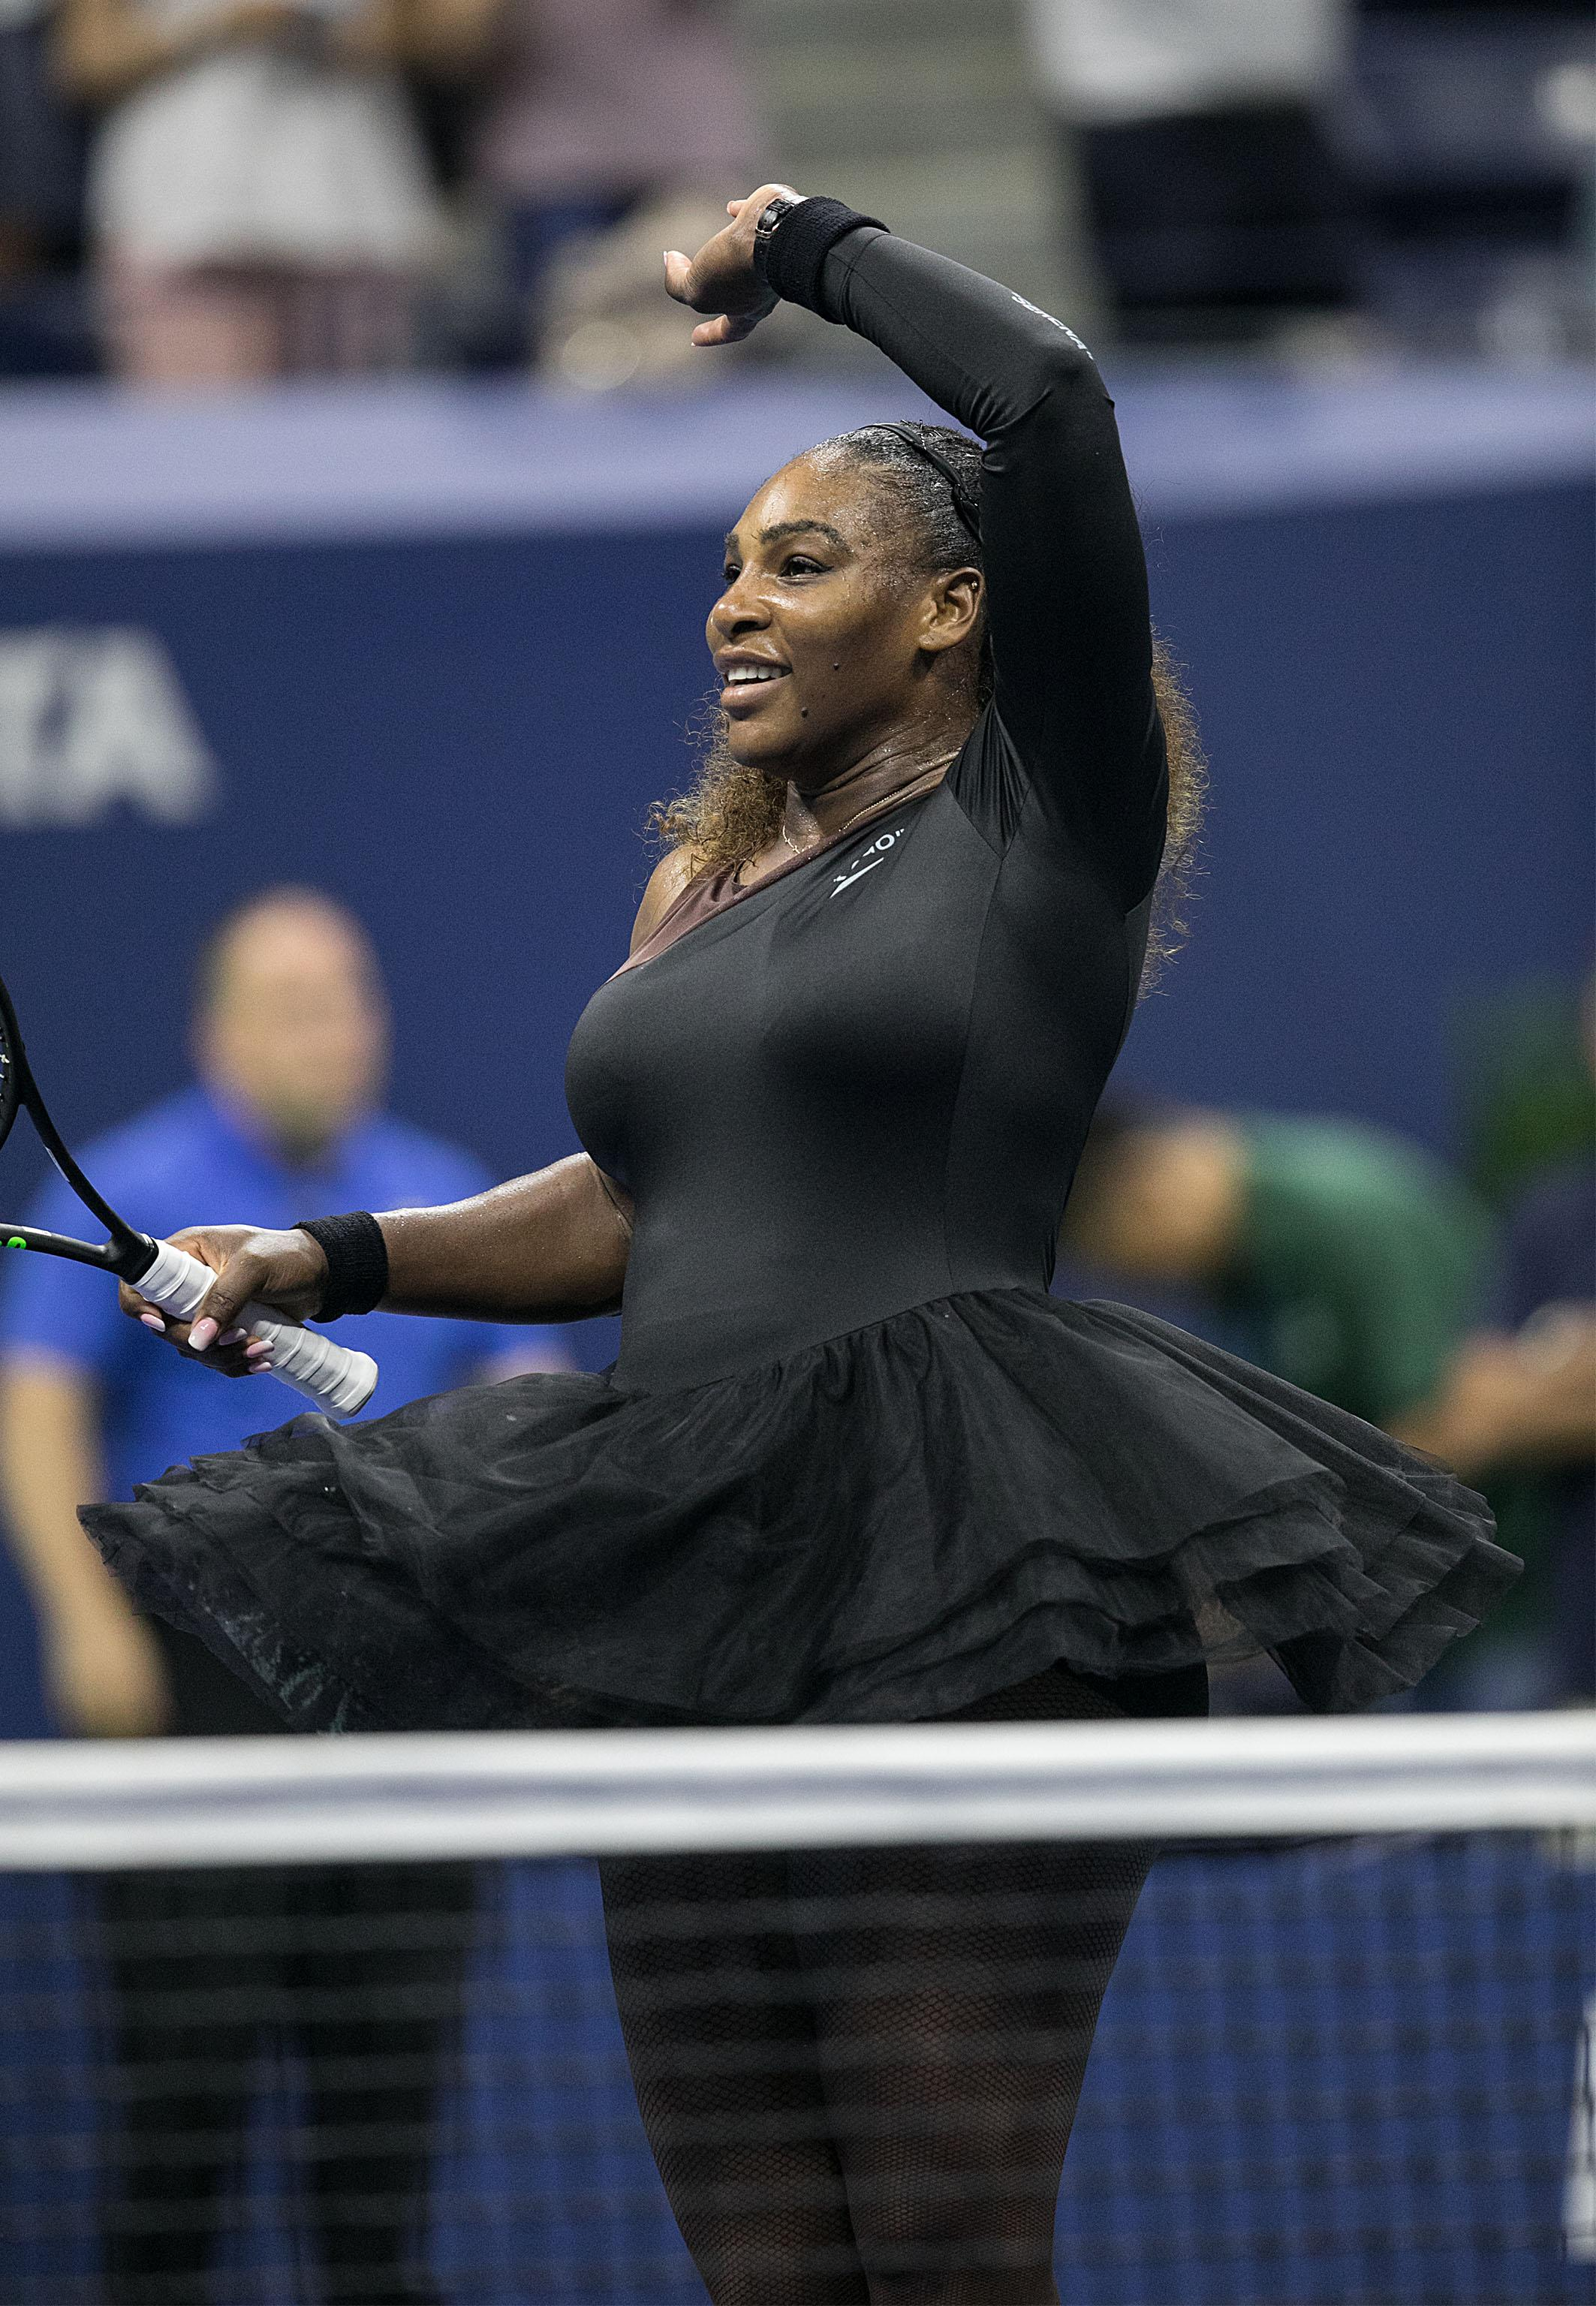 Serena Williams storms to the US Open semi-final after a straight sets win over Karolina Pliskova